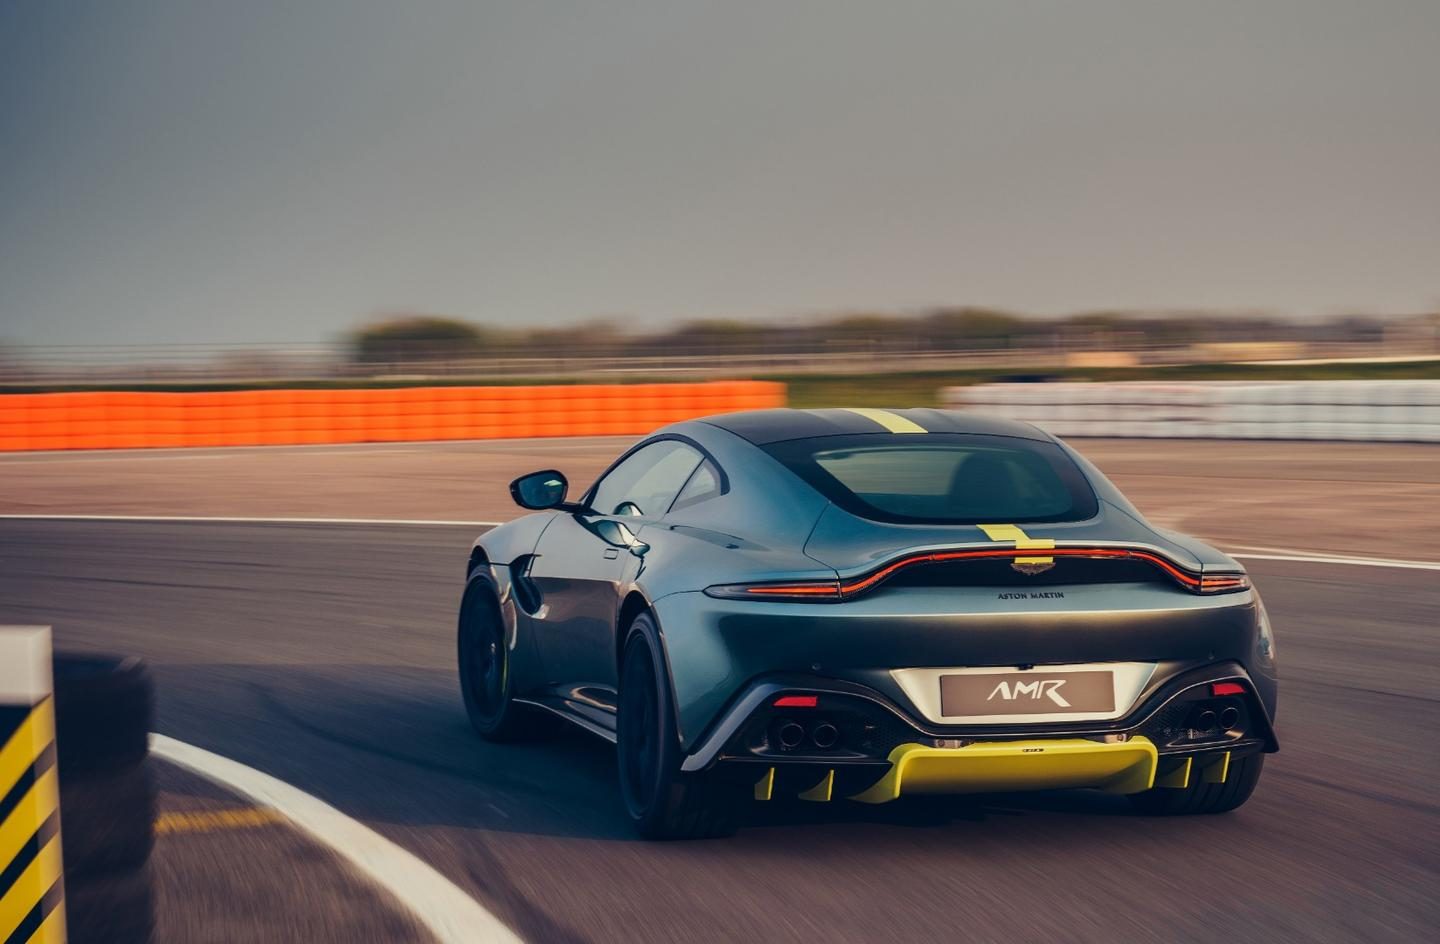 Vantage AMR retains the same 503-horsepower V8 twin turbo motor, but detuned for less torque